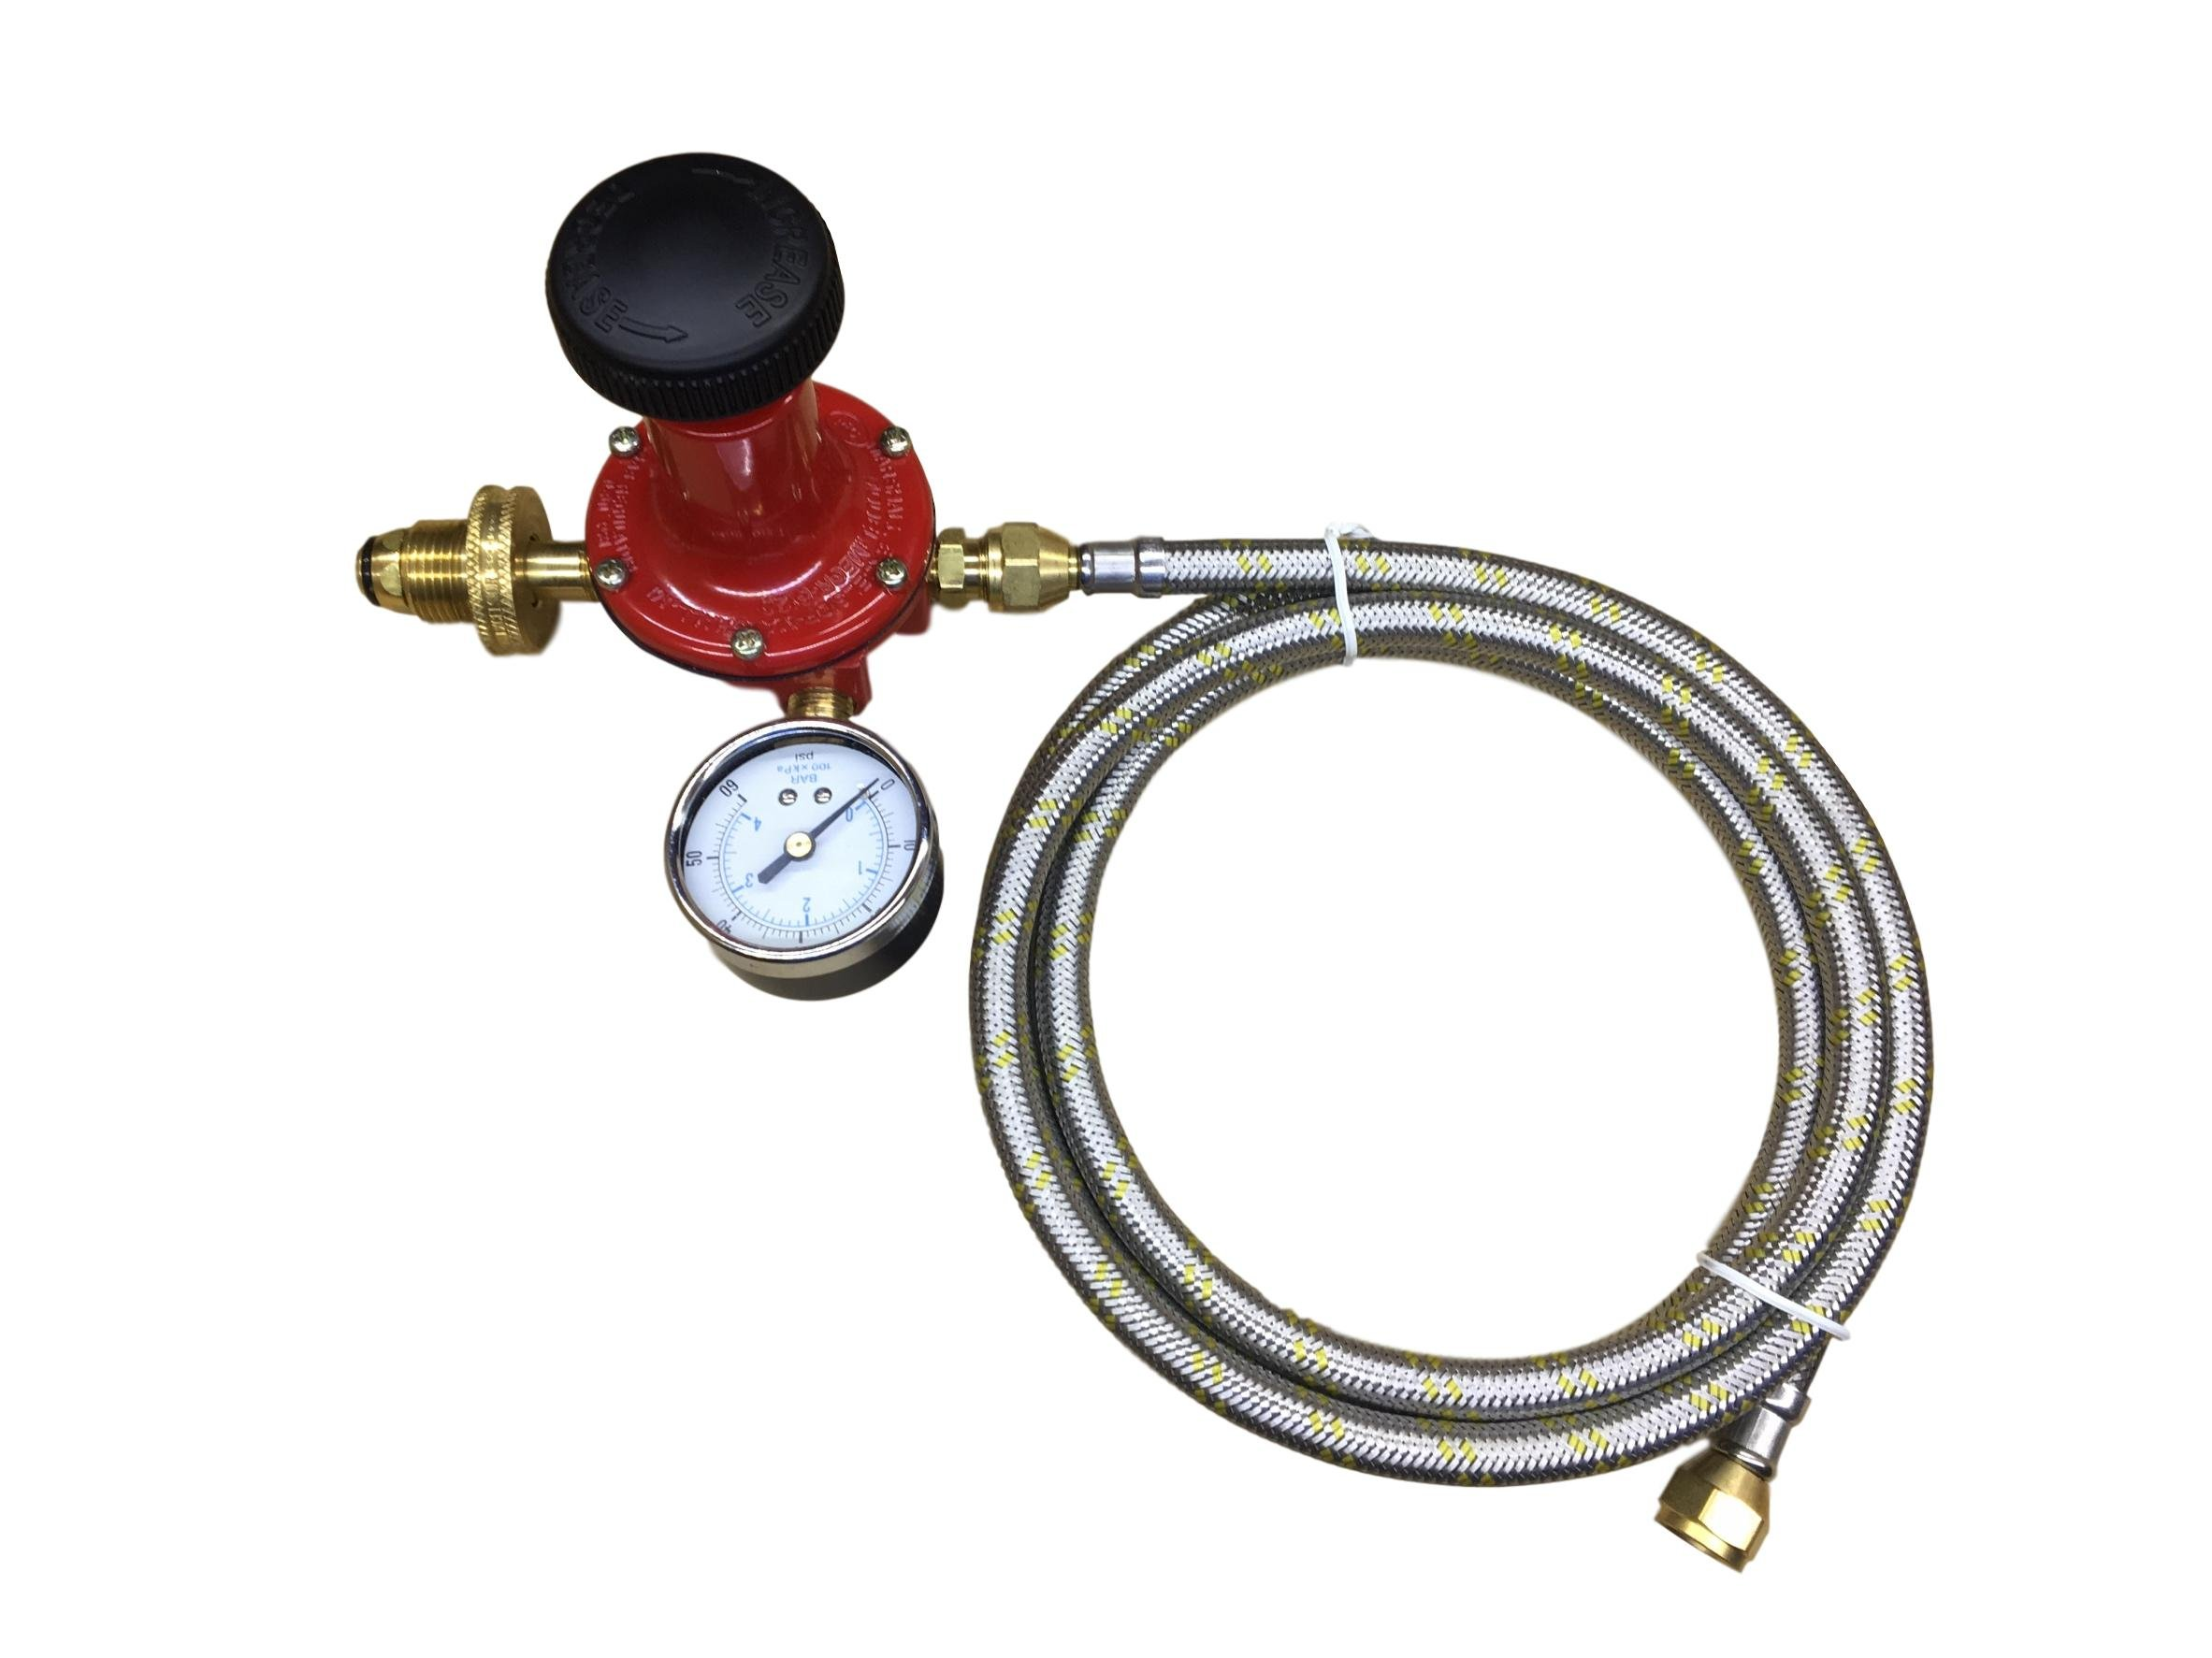 Propane LP Gas Adjustable 0-60psi High Pressure Regulator Soft Nose POL Brass Wheel Connector, Gauge and 16ft Stainless Steel Braided Hose